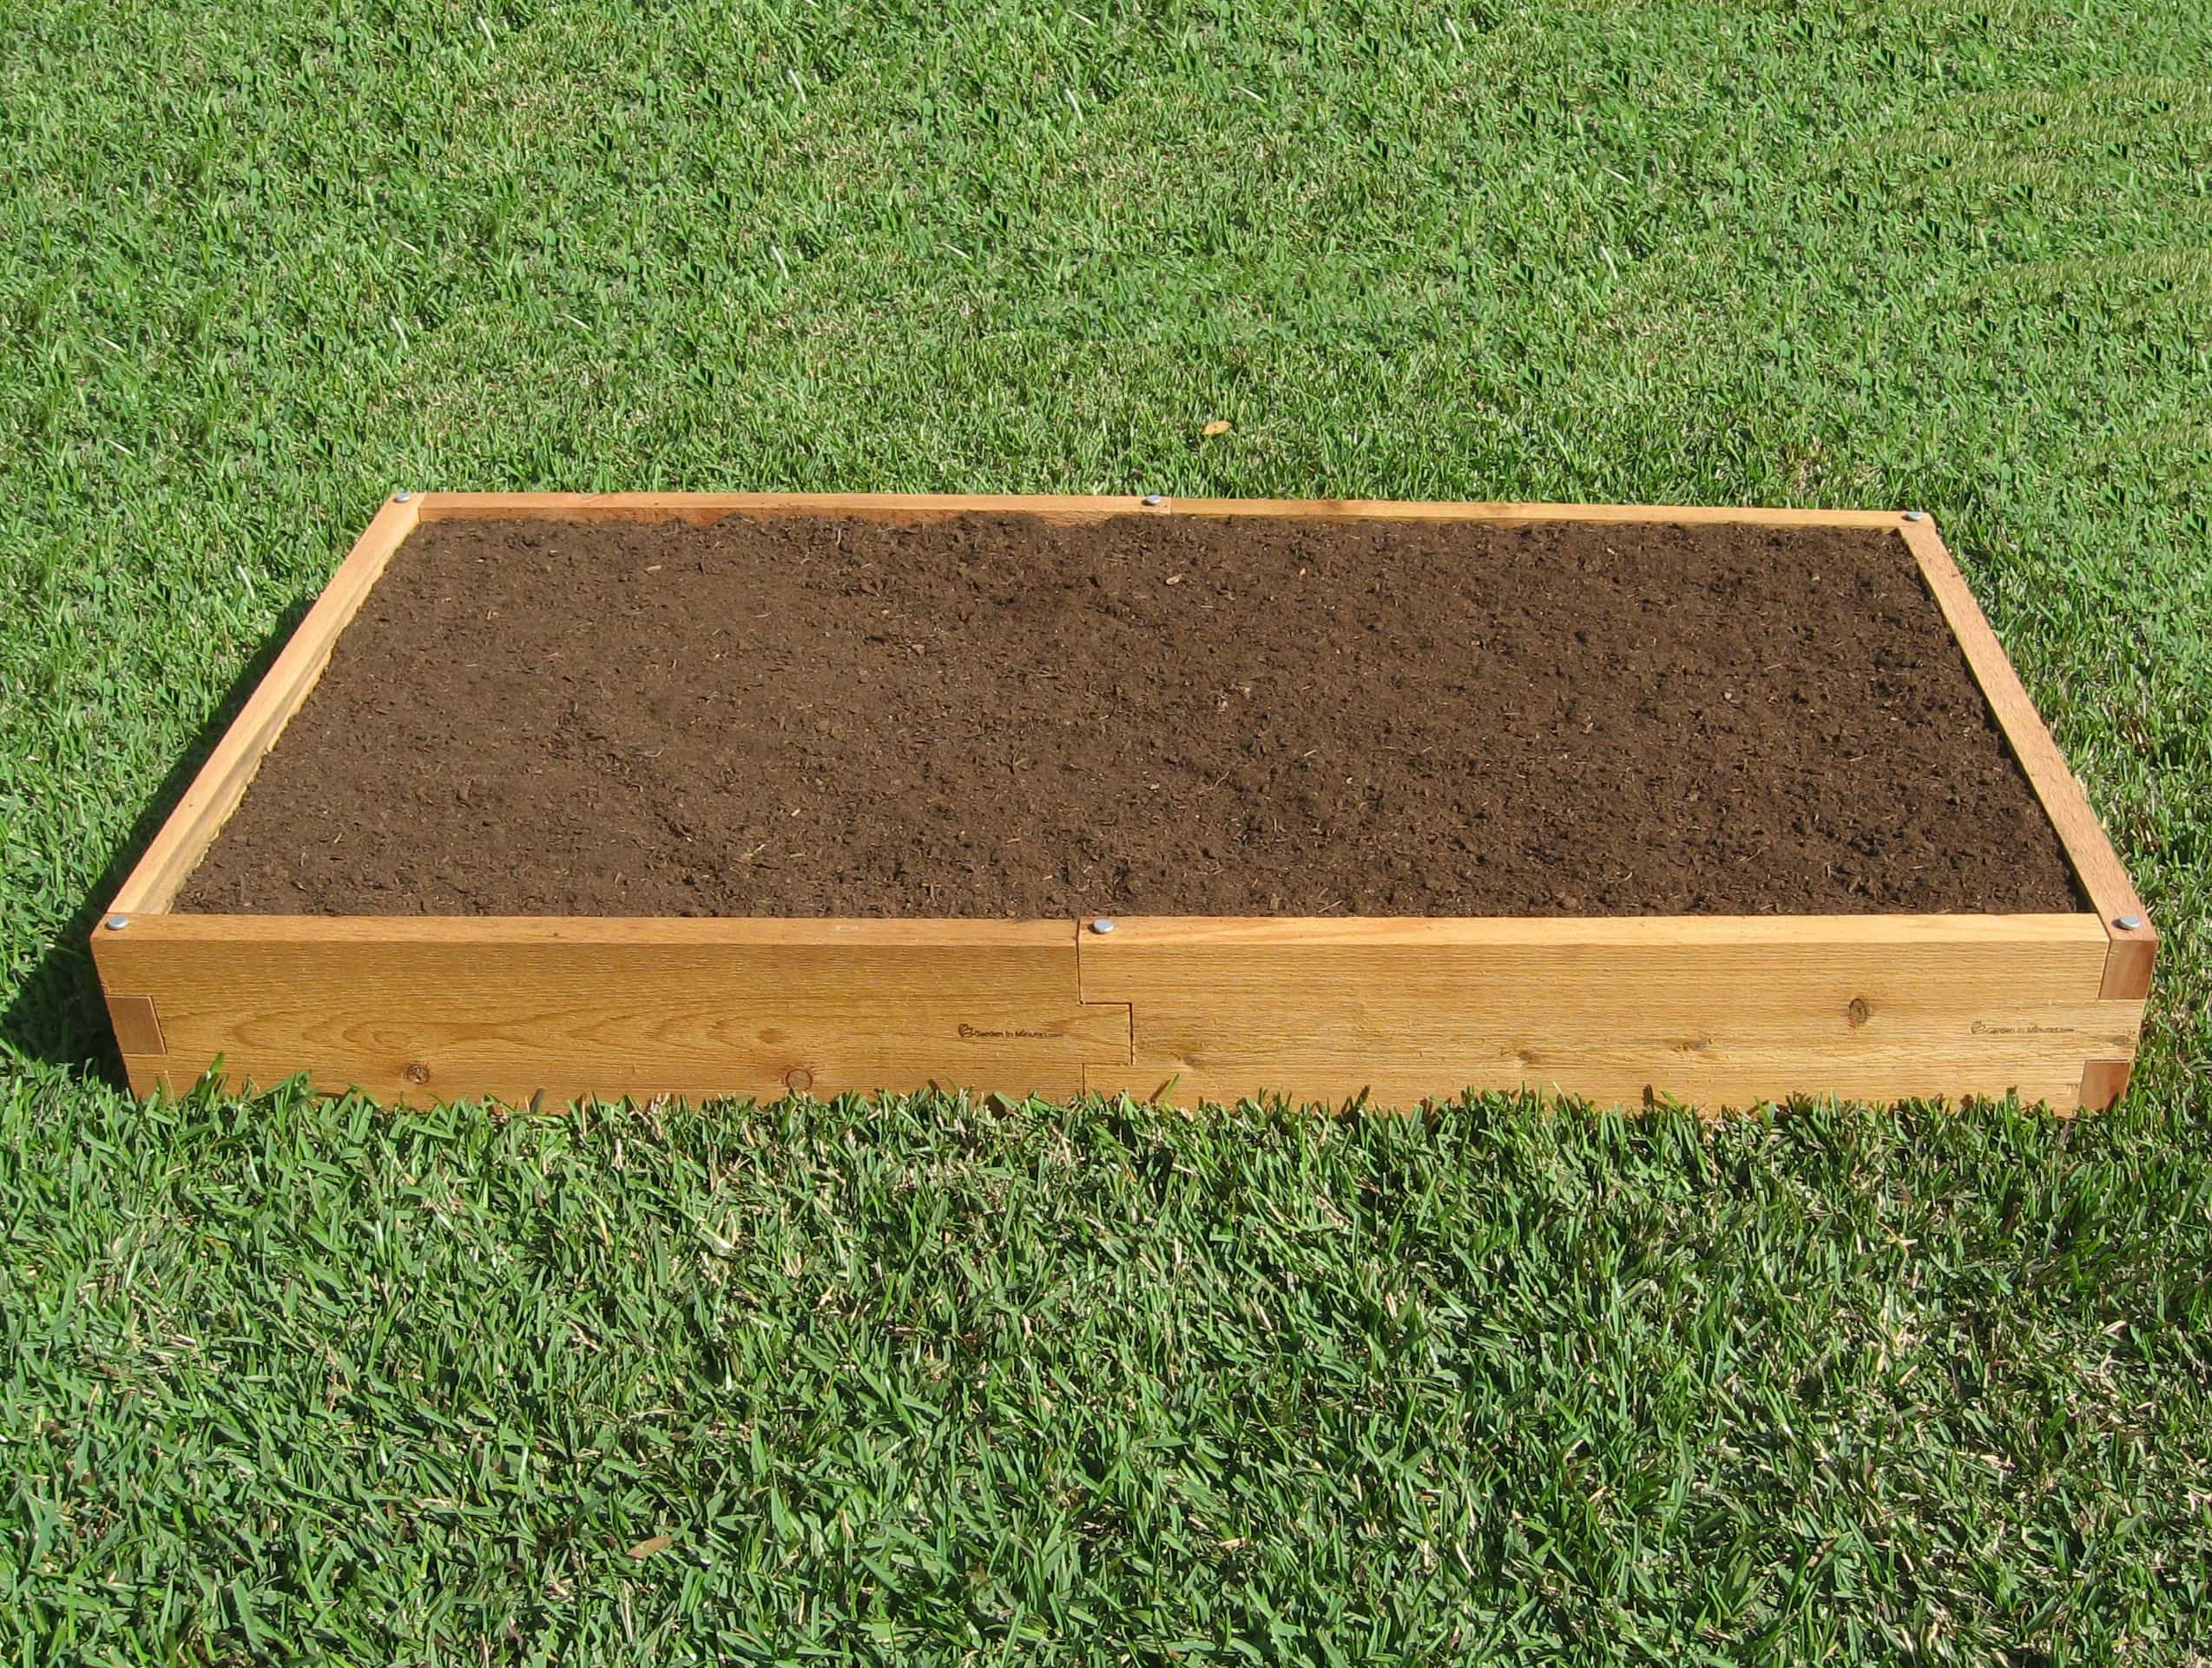 3x6 raised garden bed 3x6 cedar bed garden in minutes Raised garden beds